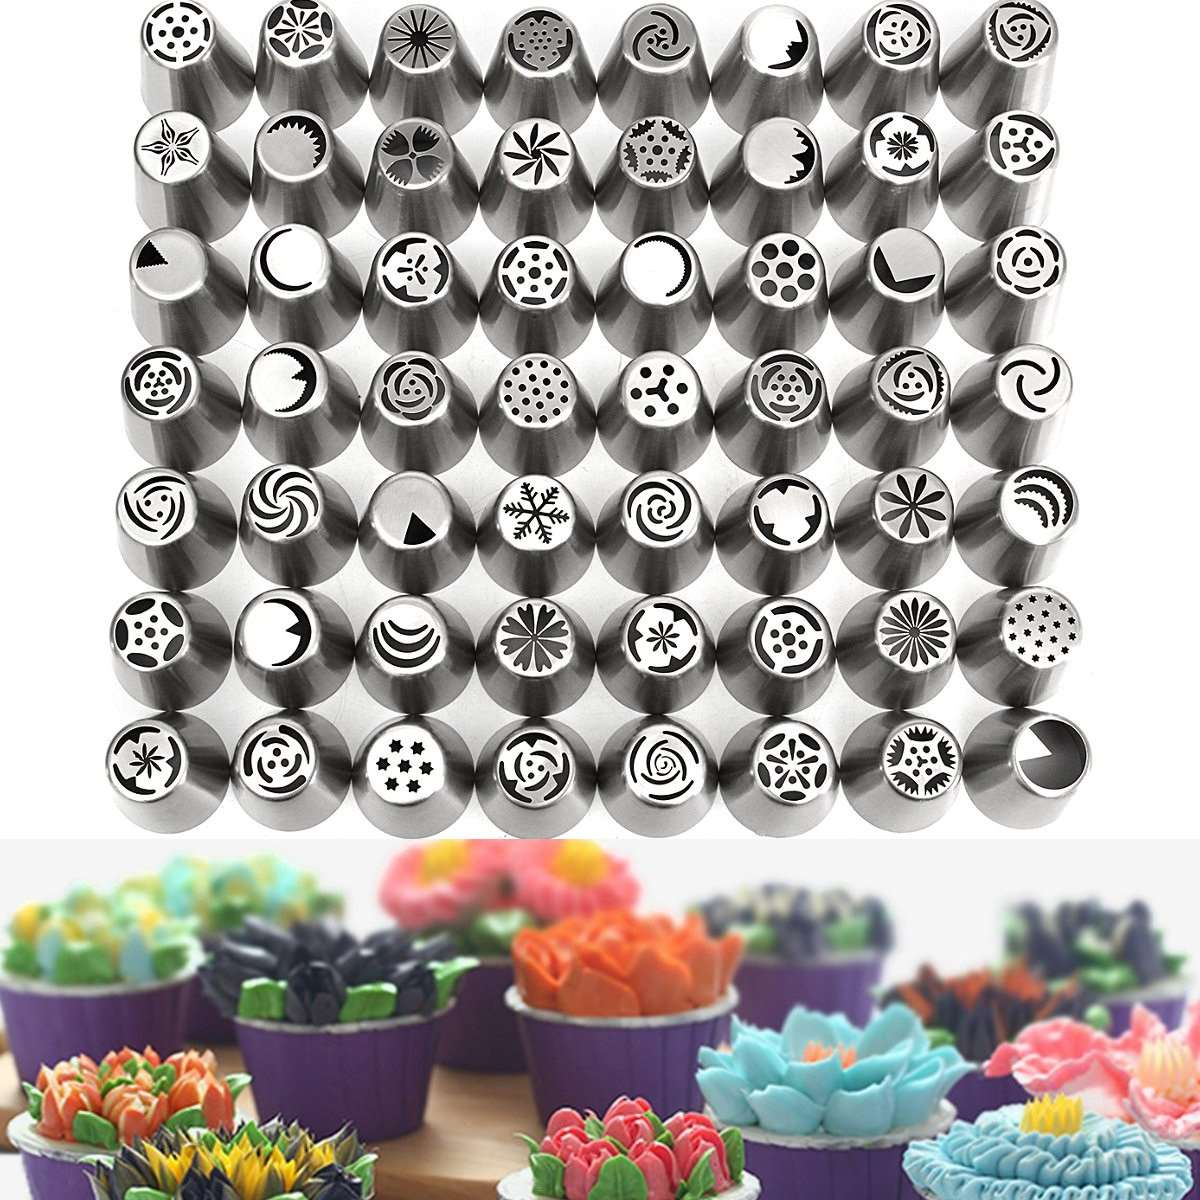 56Pcs Flower Piping Nozzles Set Stainless Cake Decorating Tips Kit Home Kitchen Bakery Baking Tools Cake Decor Kit Accessories(China (Mainland))